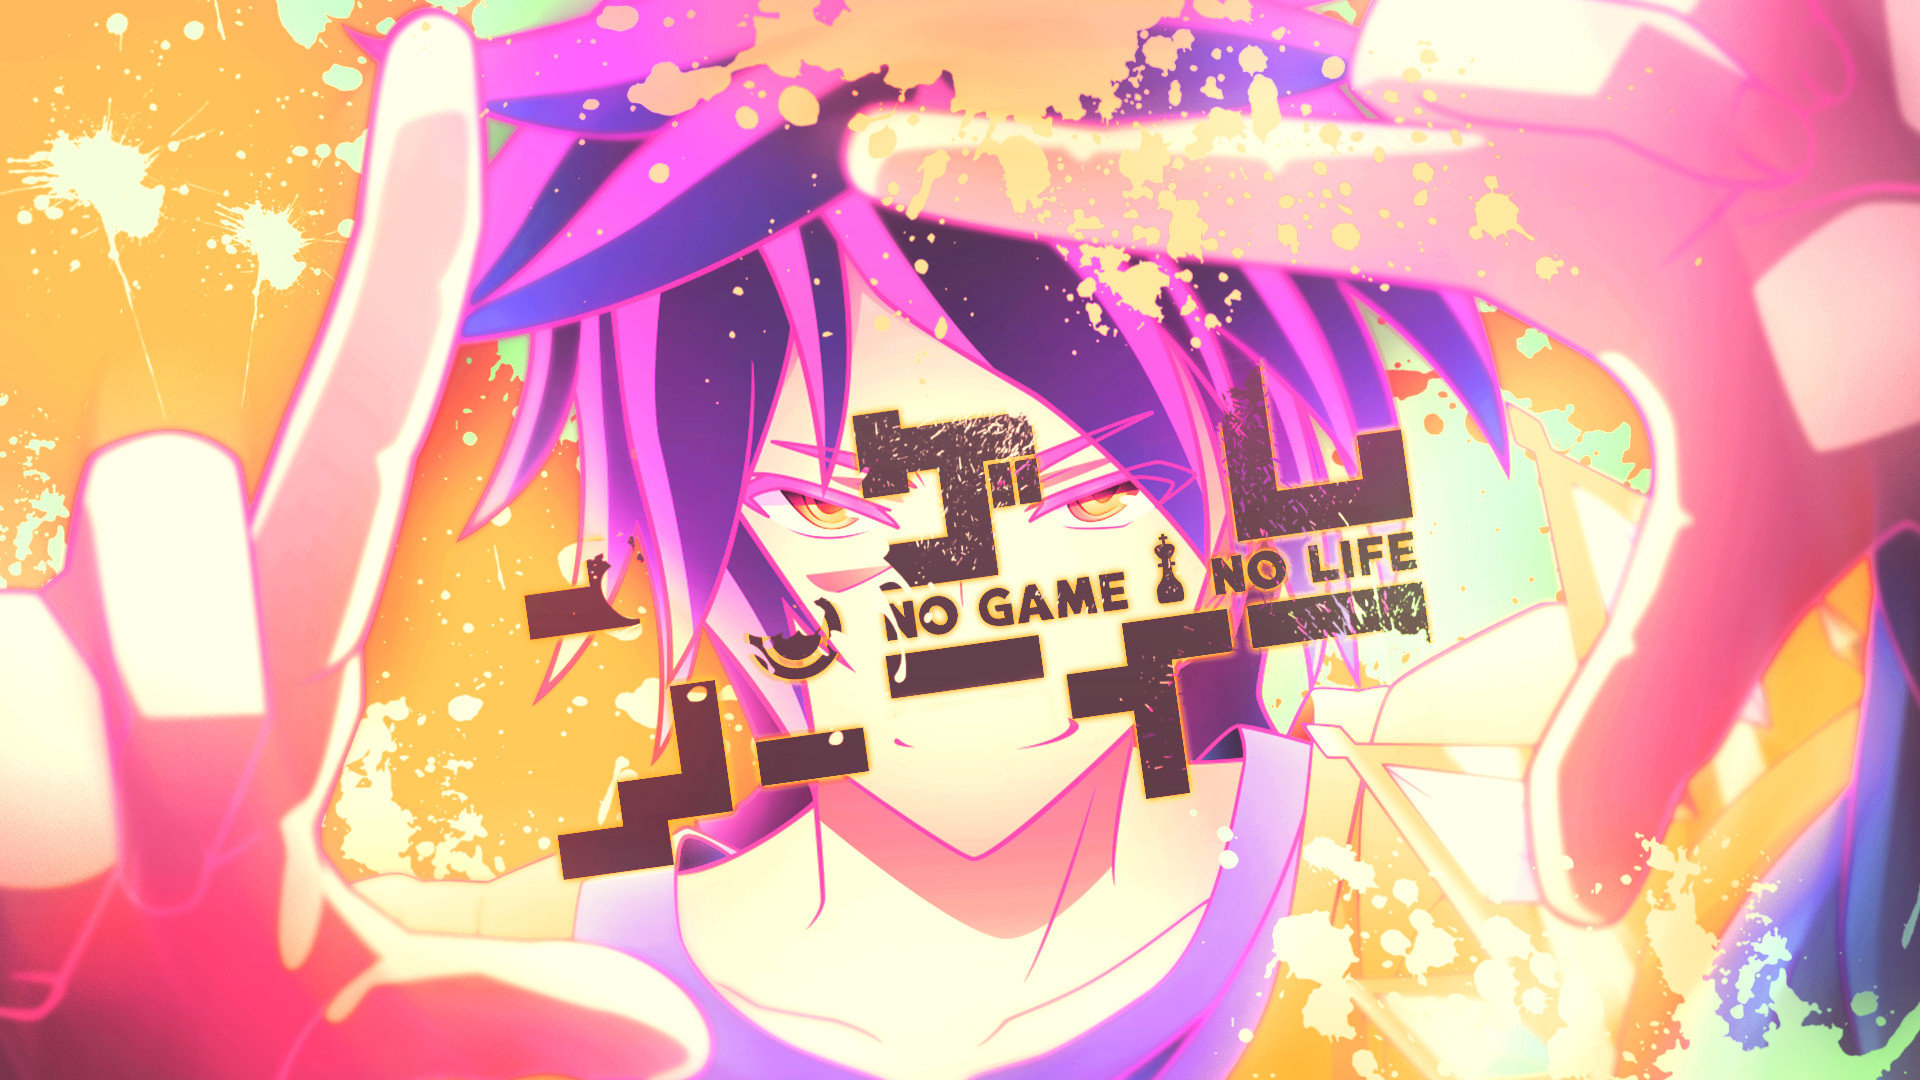 Download Hd 1920x1080 Sora No Game No Life Desktop Background Id